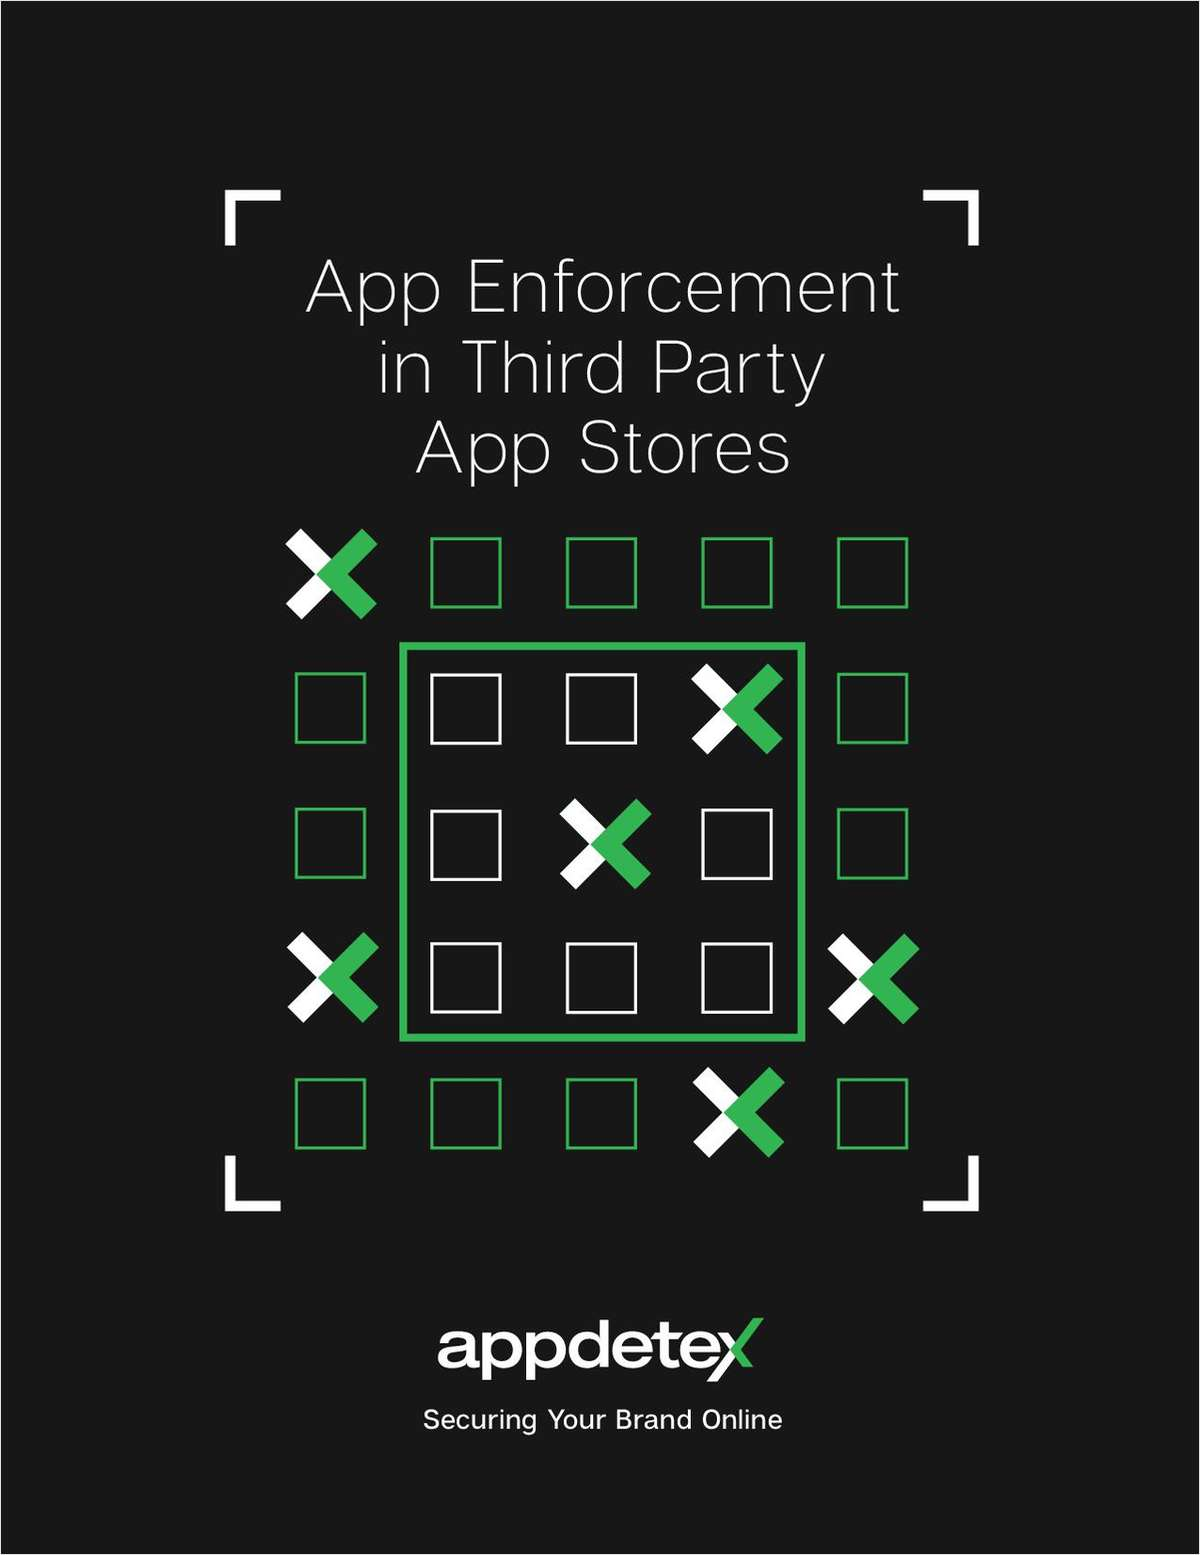 App Enforcement in Third Party App Stores